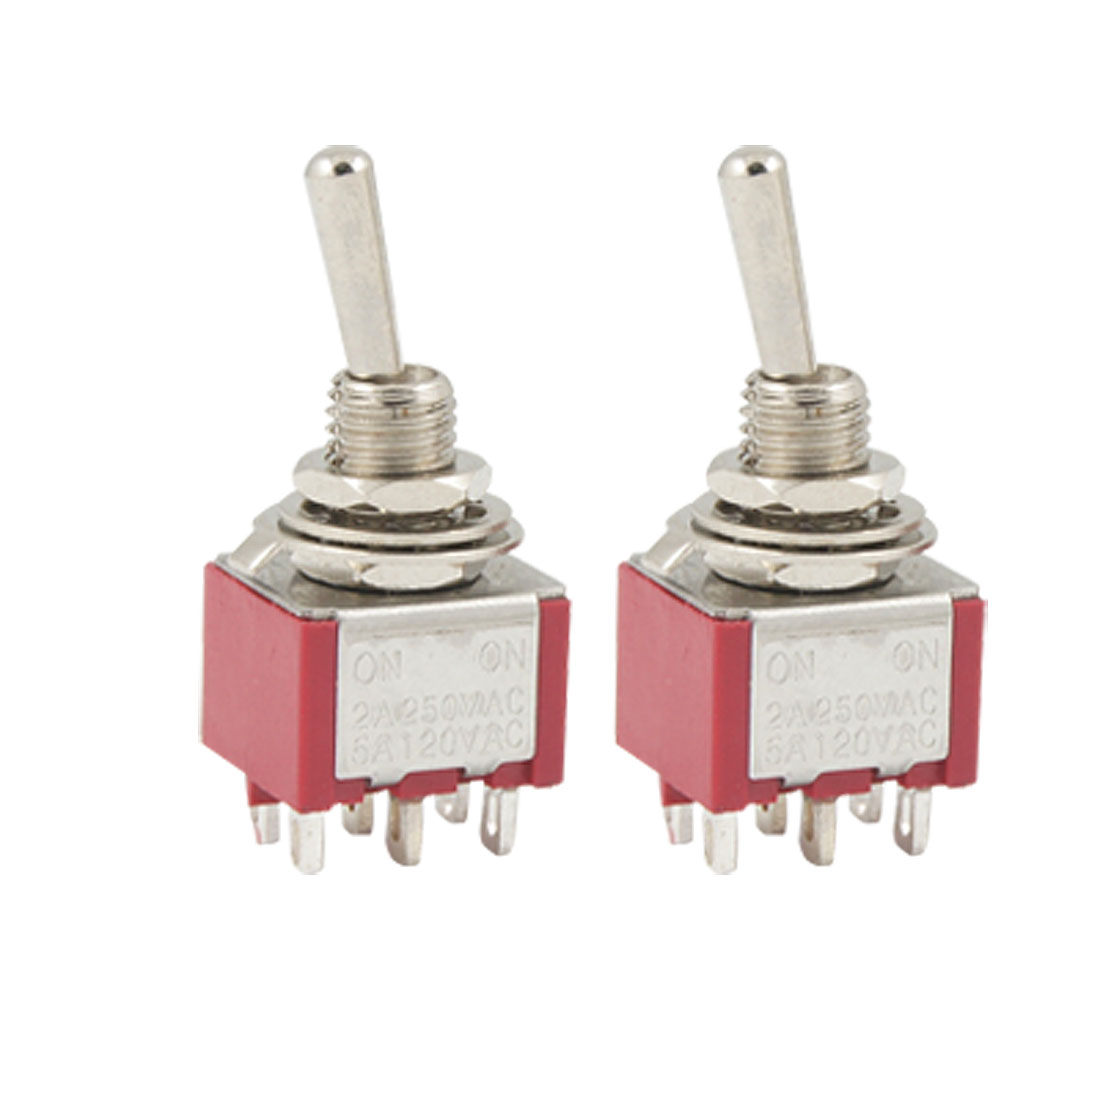 2 Pcs ON/ON 2 Position Double Pole Double Throw Toggle Switch